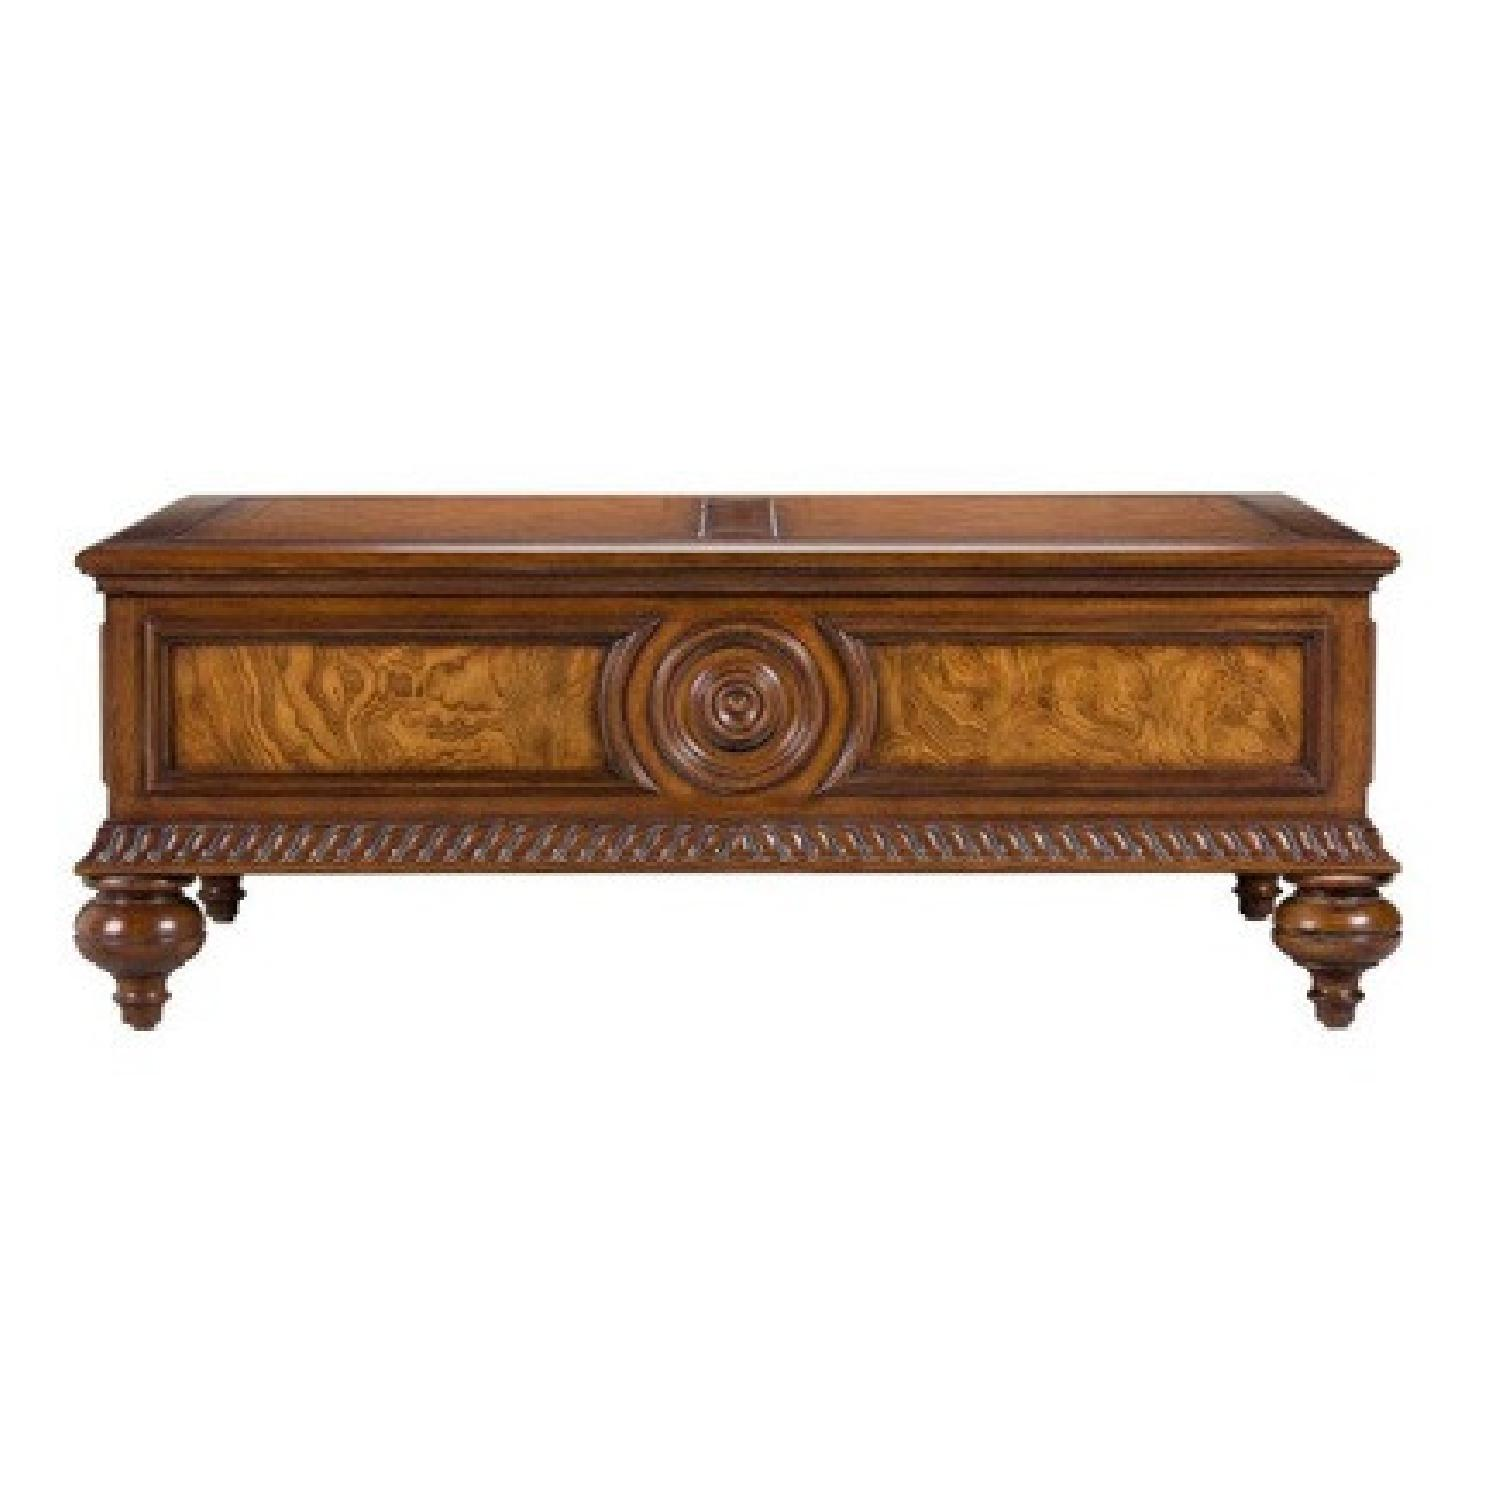 Ethan Allen Morley Coffee Table - image-6